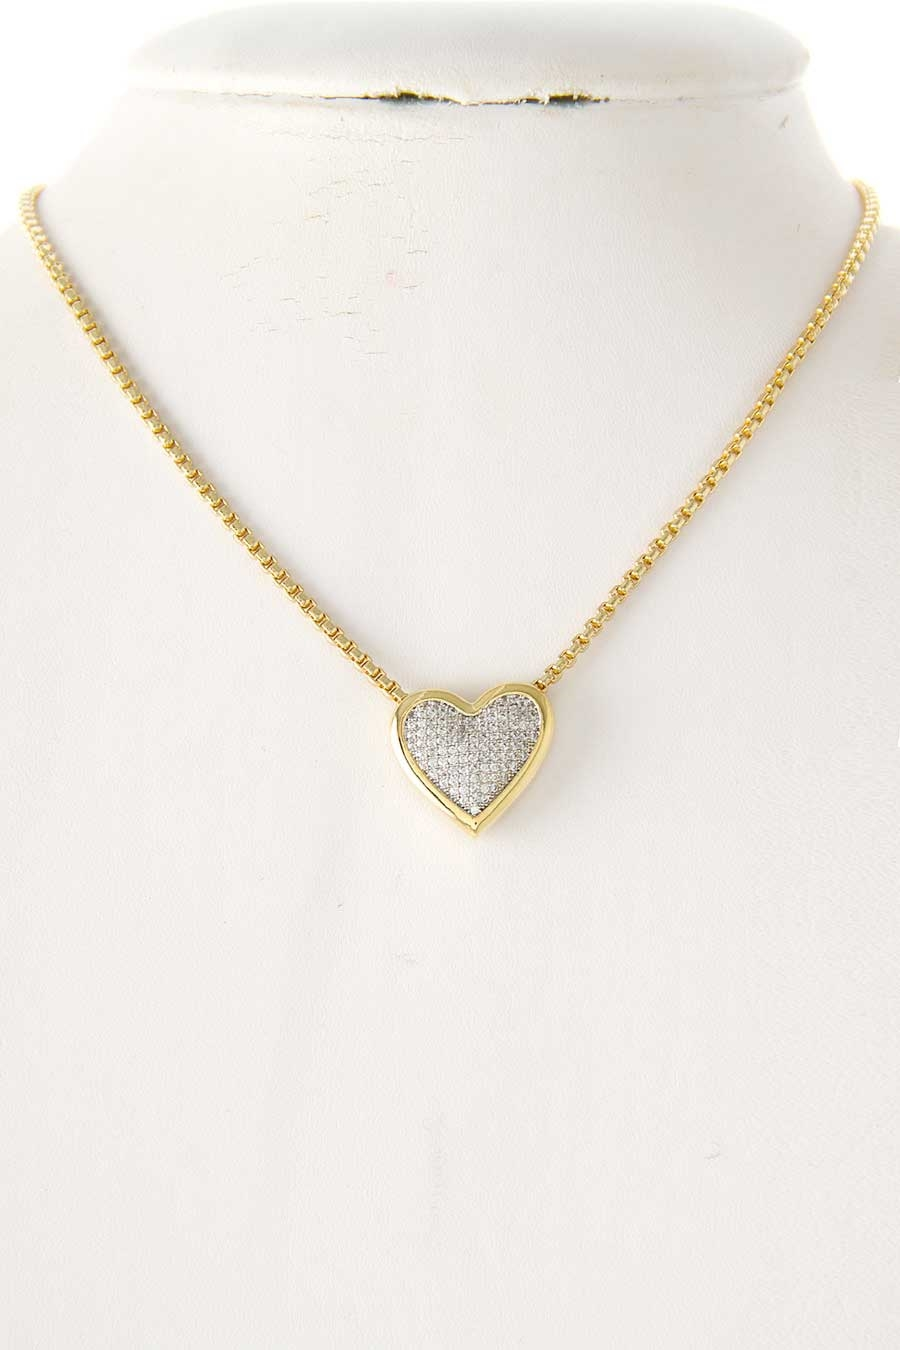 CZ HEART PAVE PENDANT NECKLACE - orangeshine.com